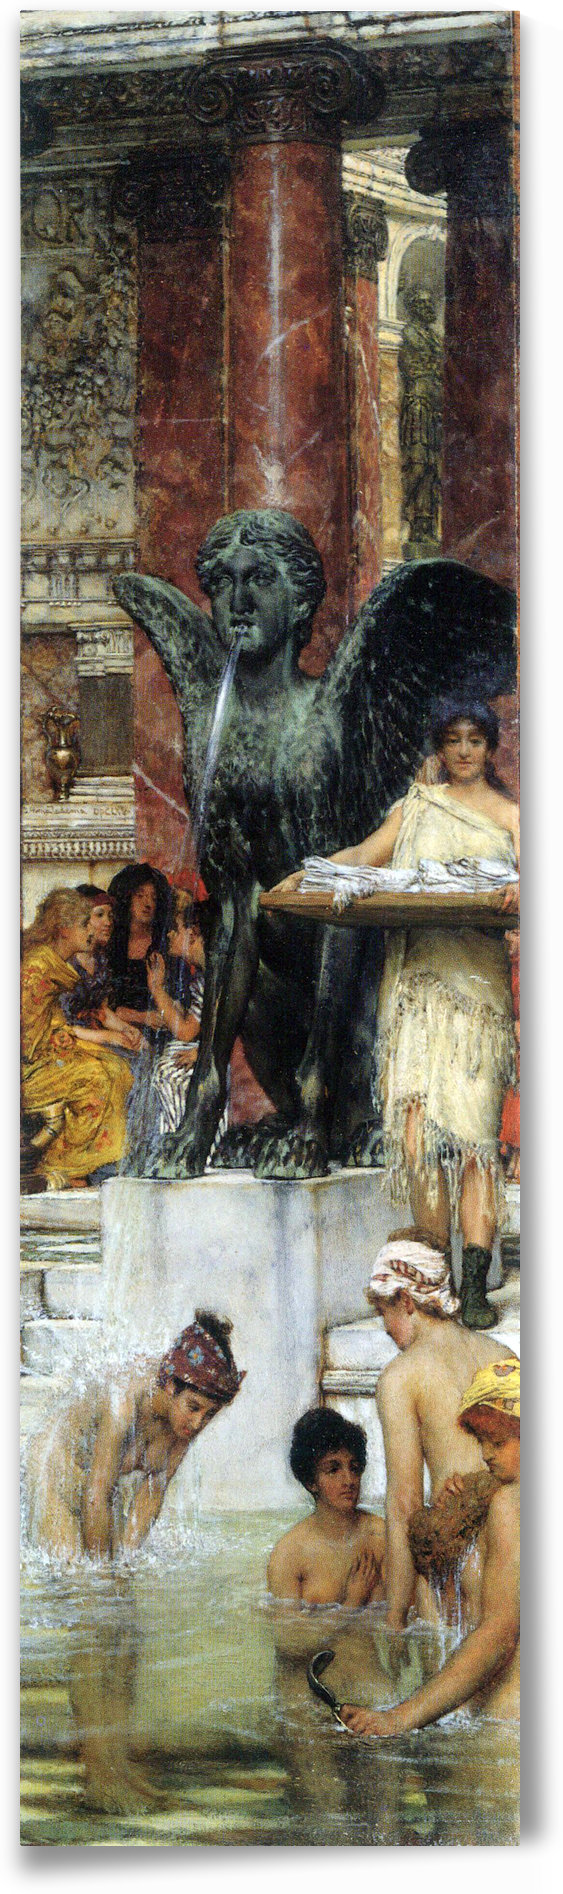 A bathroom (An ancient tradition) by Alma-Tadema by Alma-Tadema